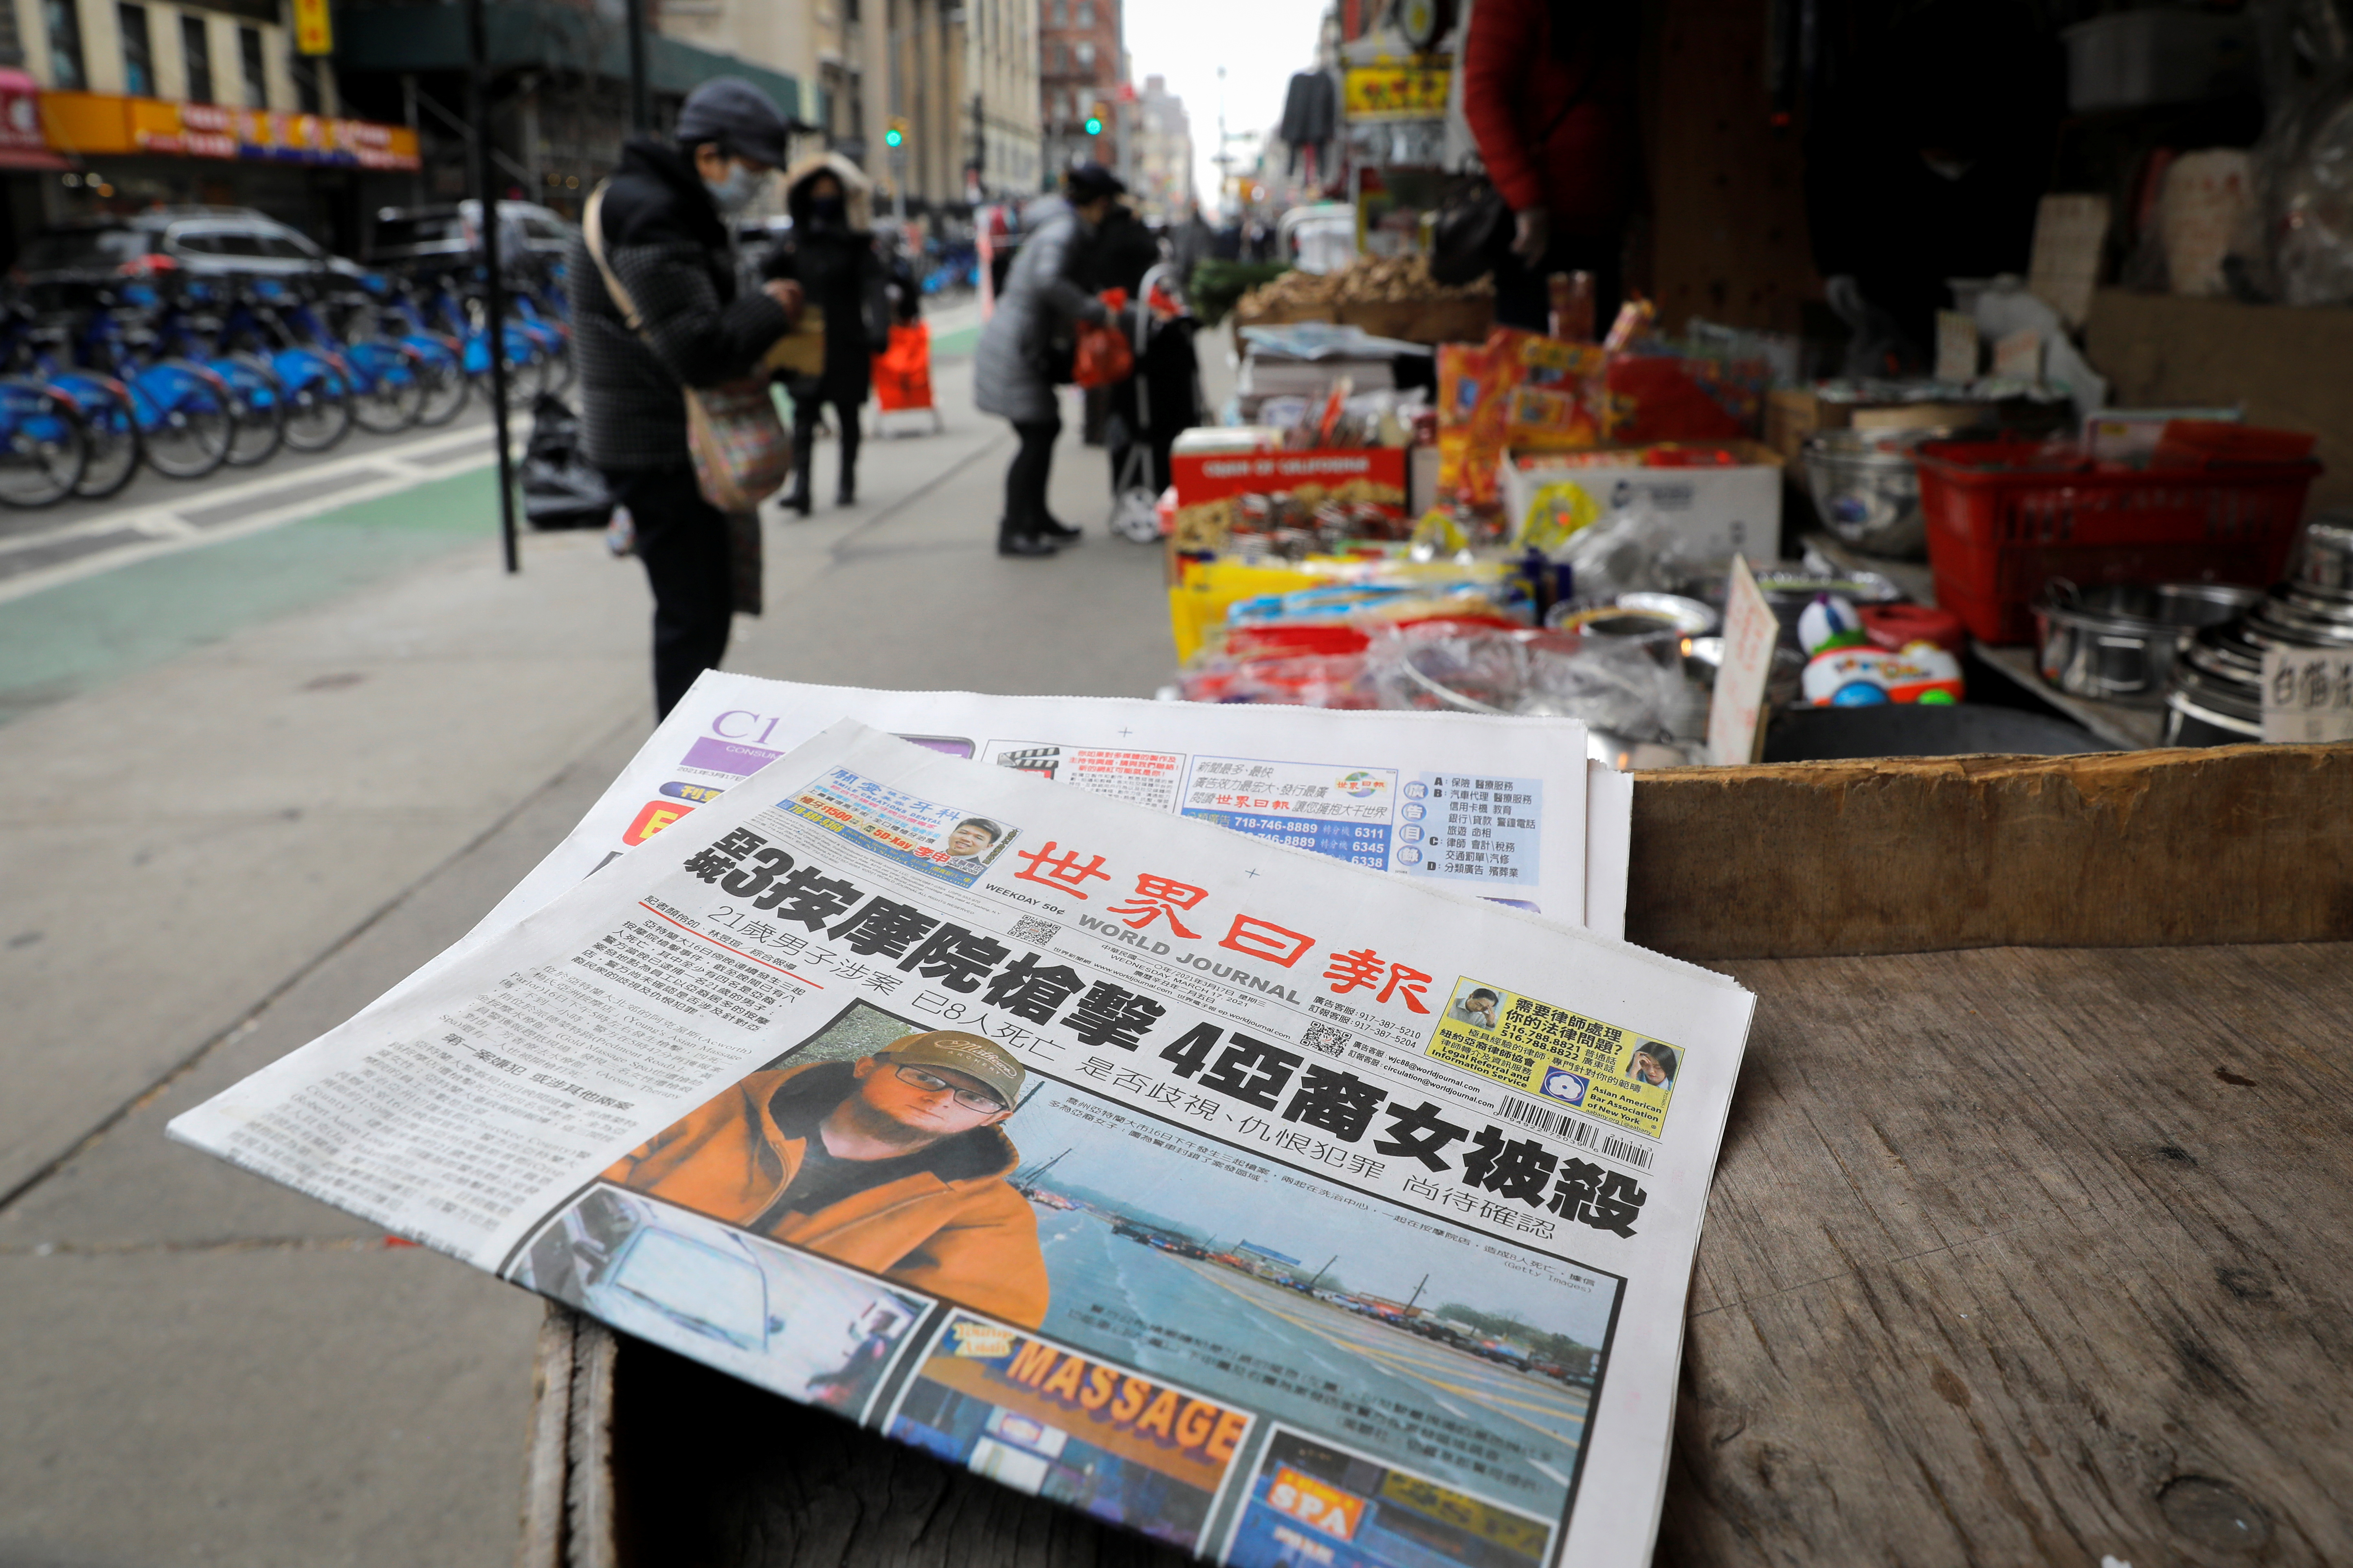 A newspaper in Chinese language sits outside a shop with headlines about the deadly shootings at three spas in Georgia, in the Chinatown section of Manhattan in New York City, New York, U.S., March 17, 2021. REUTERS/Mike Segar